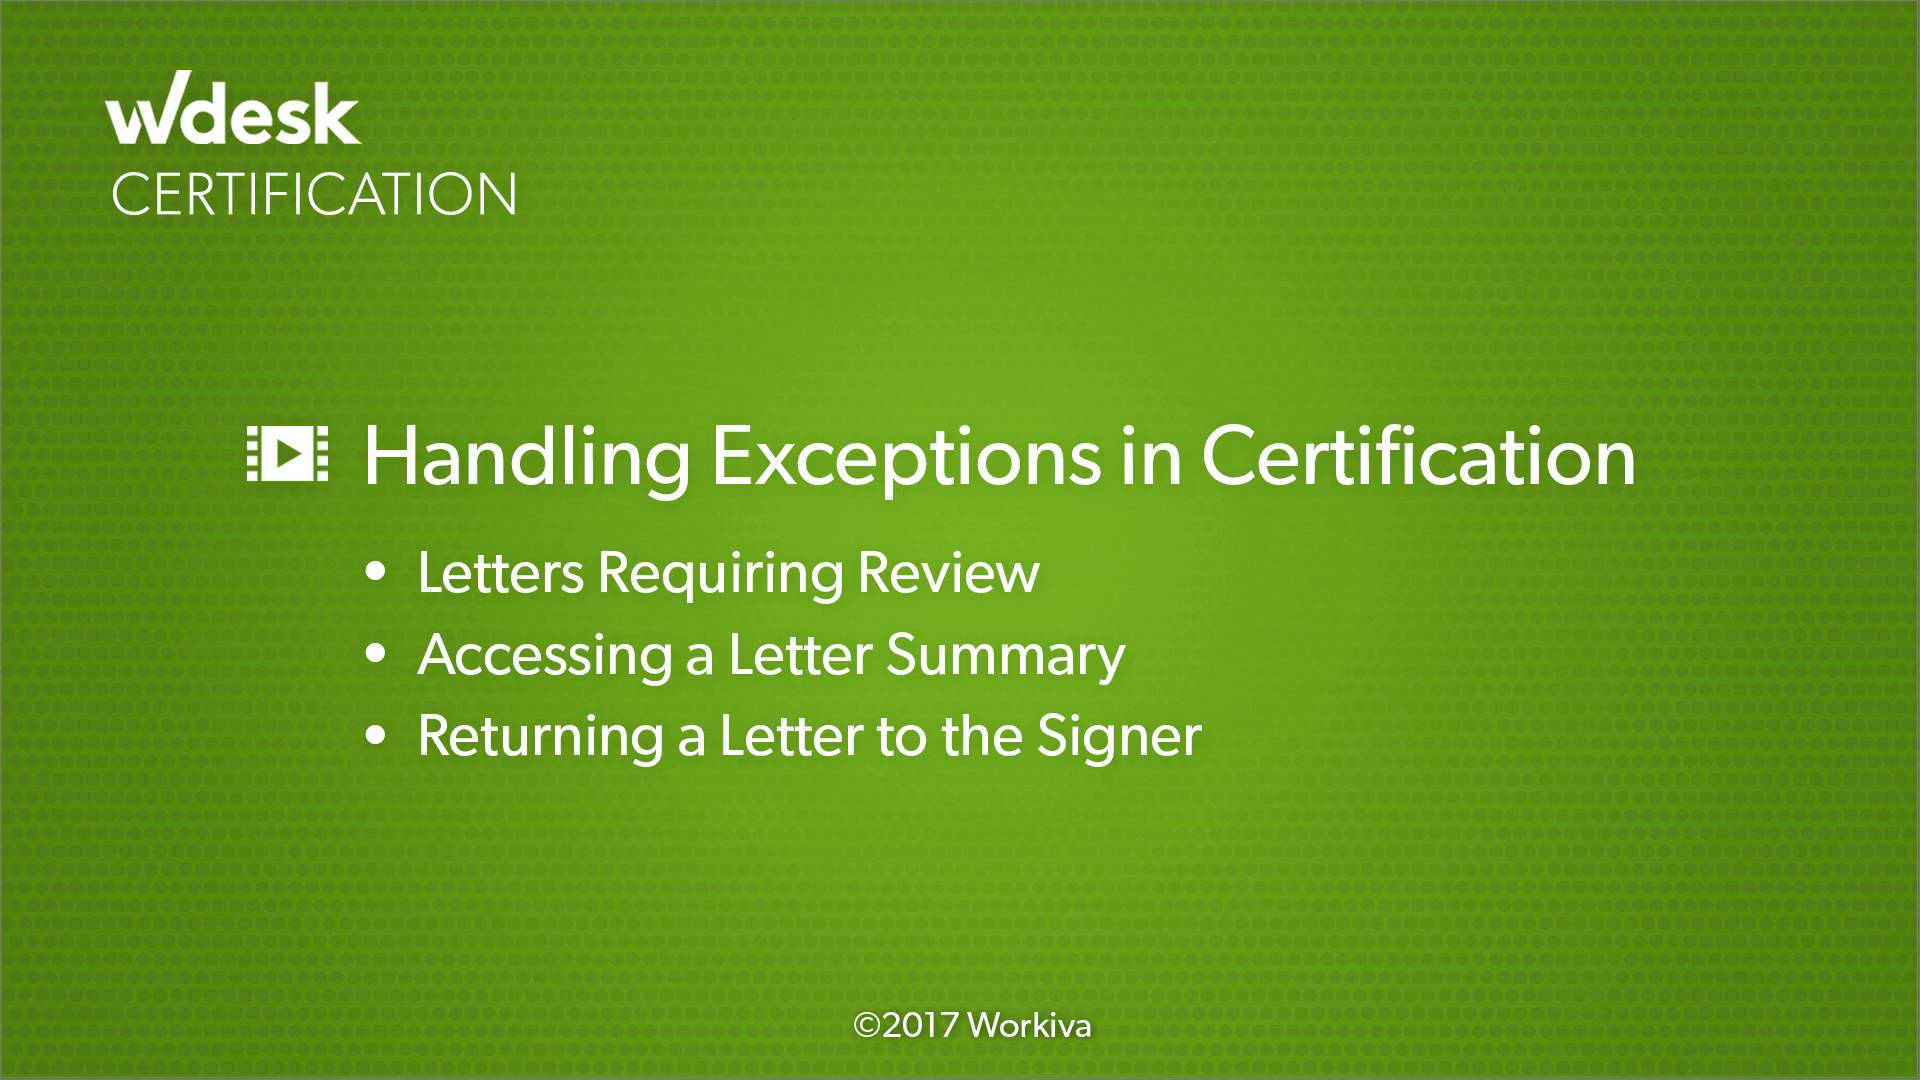 Approving Letters Through Certification Wdesk Help